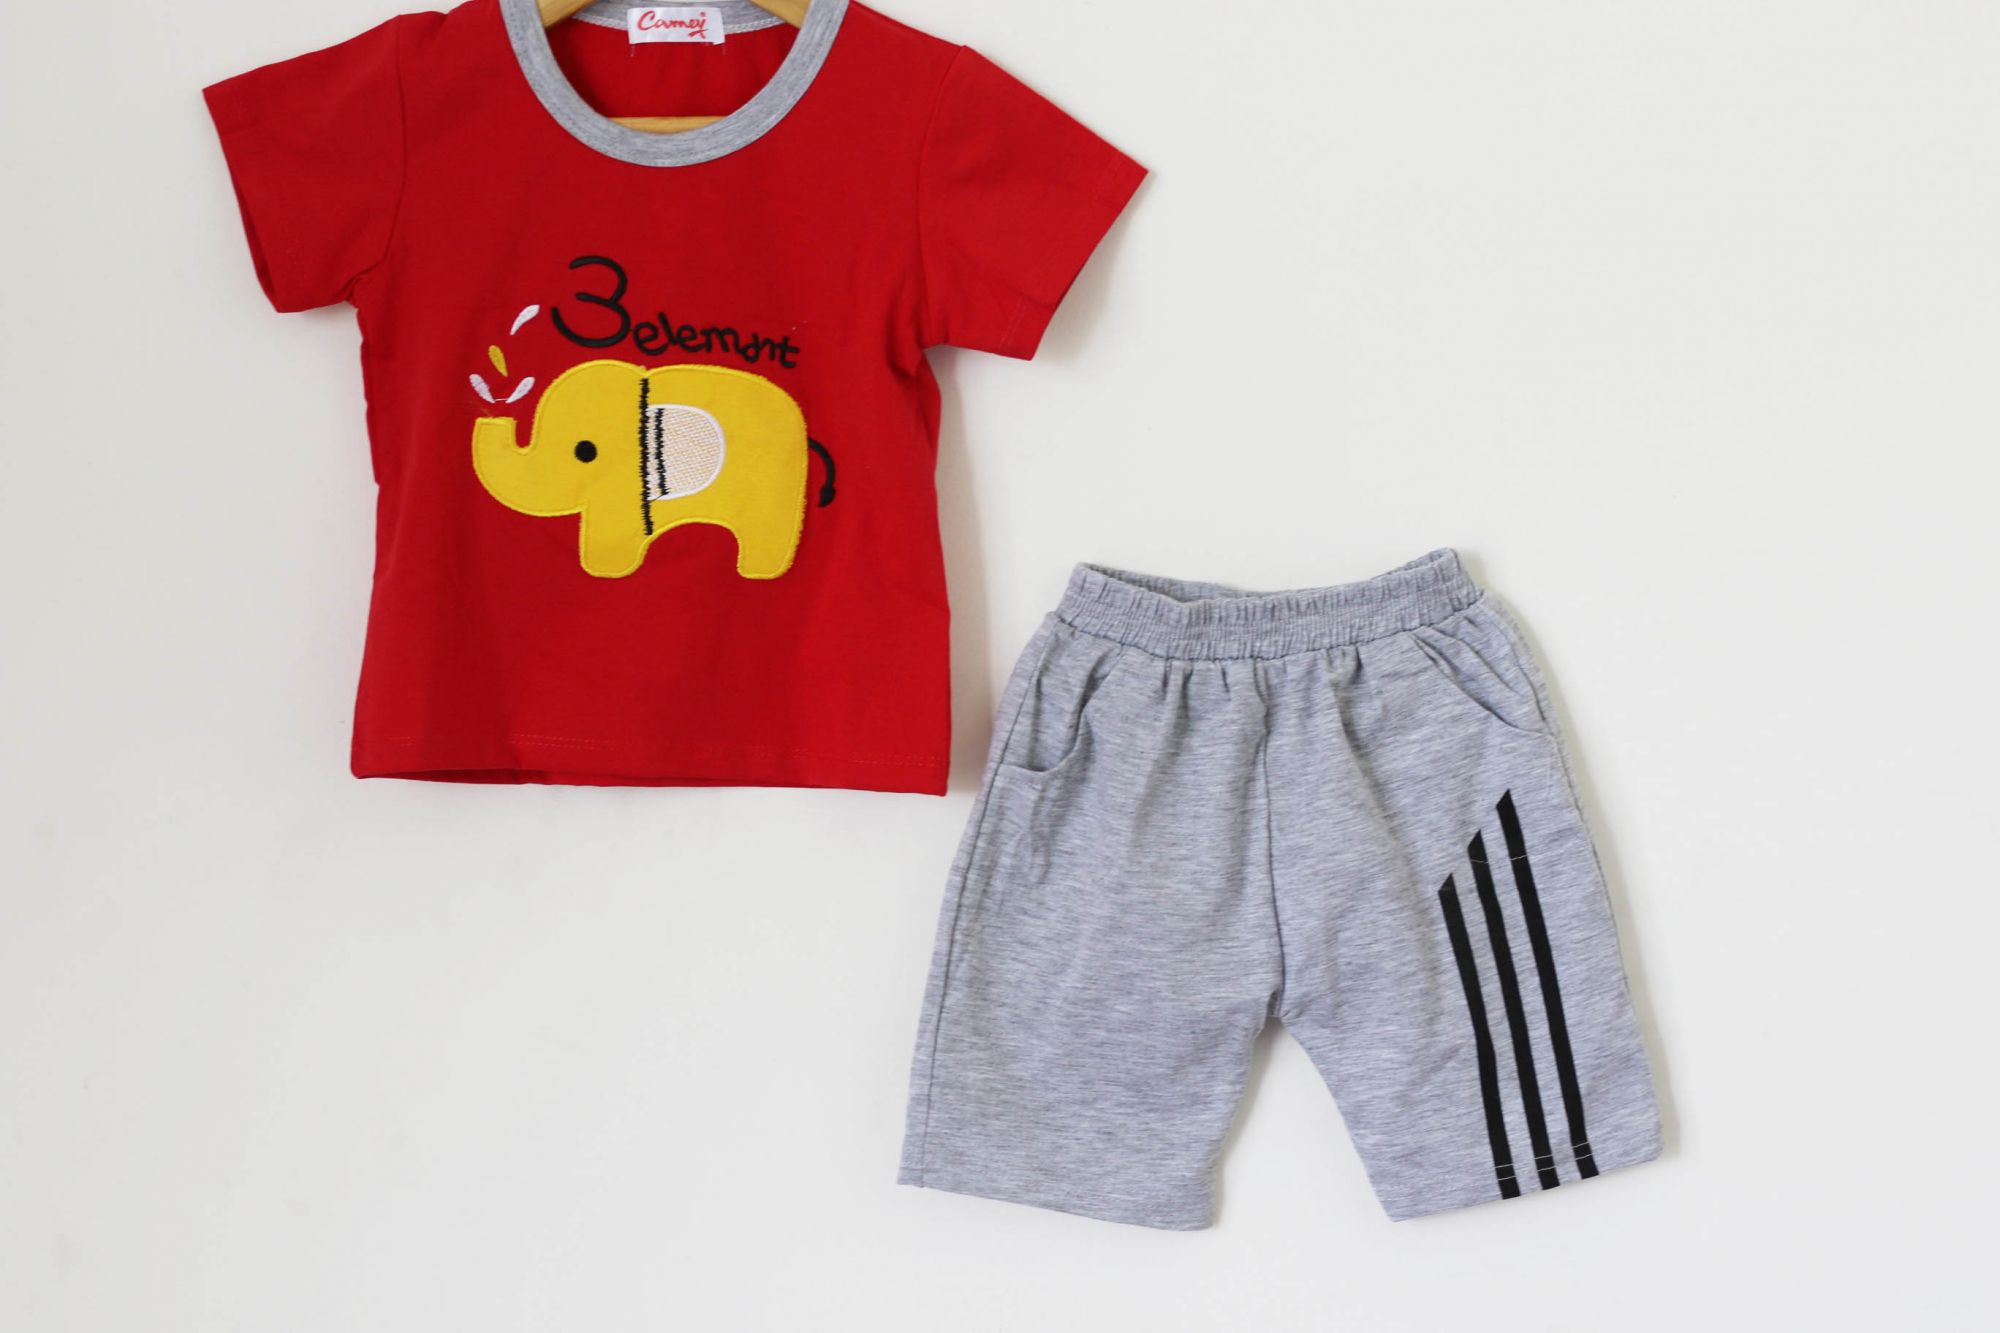 Boys Red and Grey Elephant Print Summer set of Top and Shorts